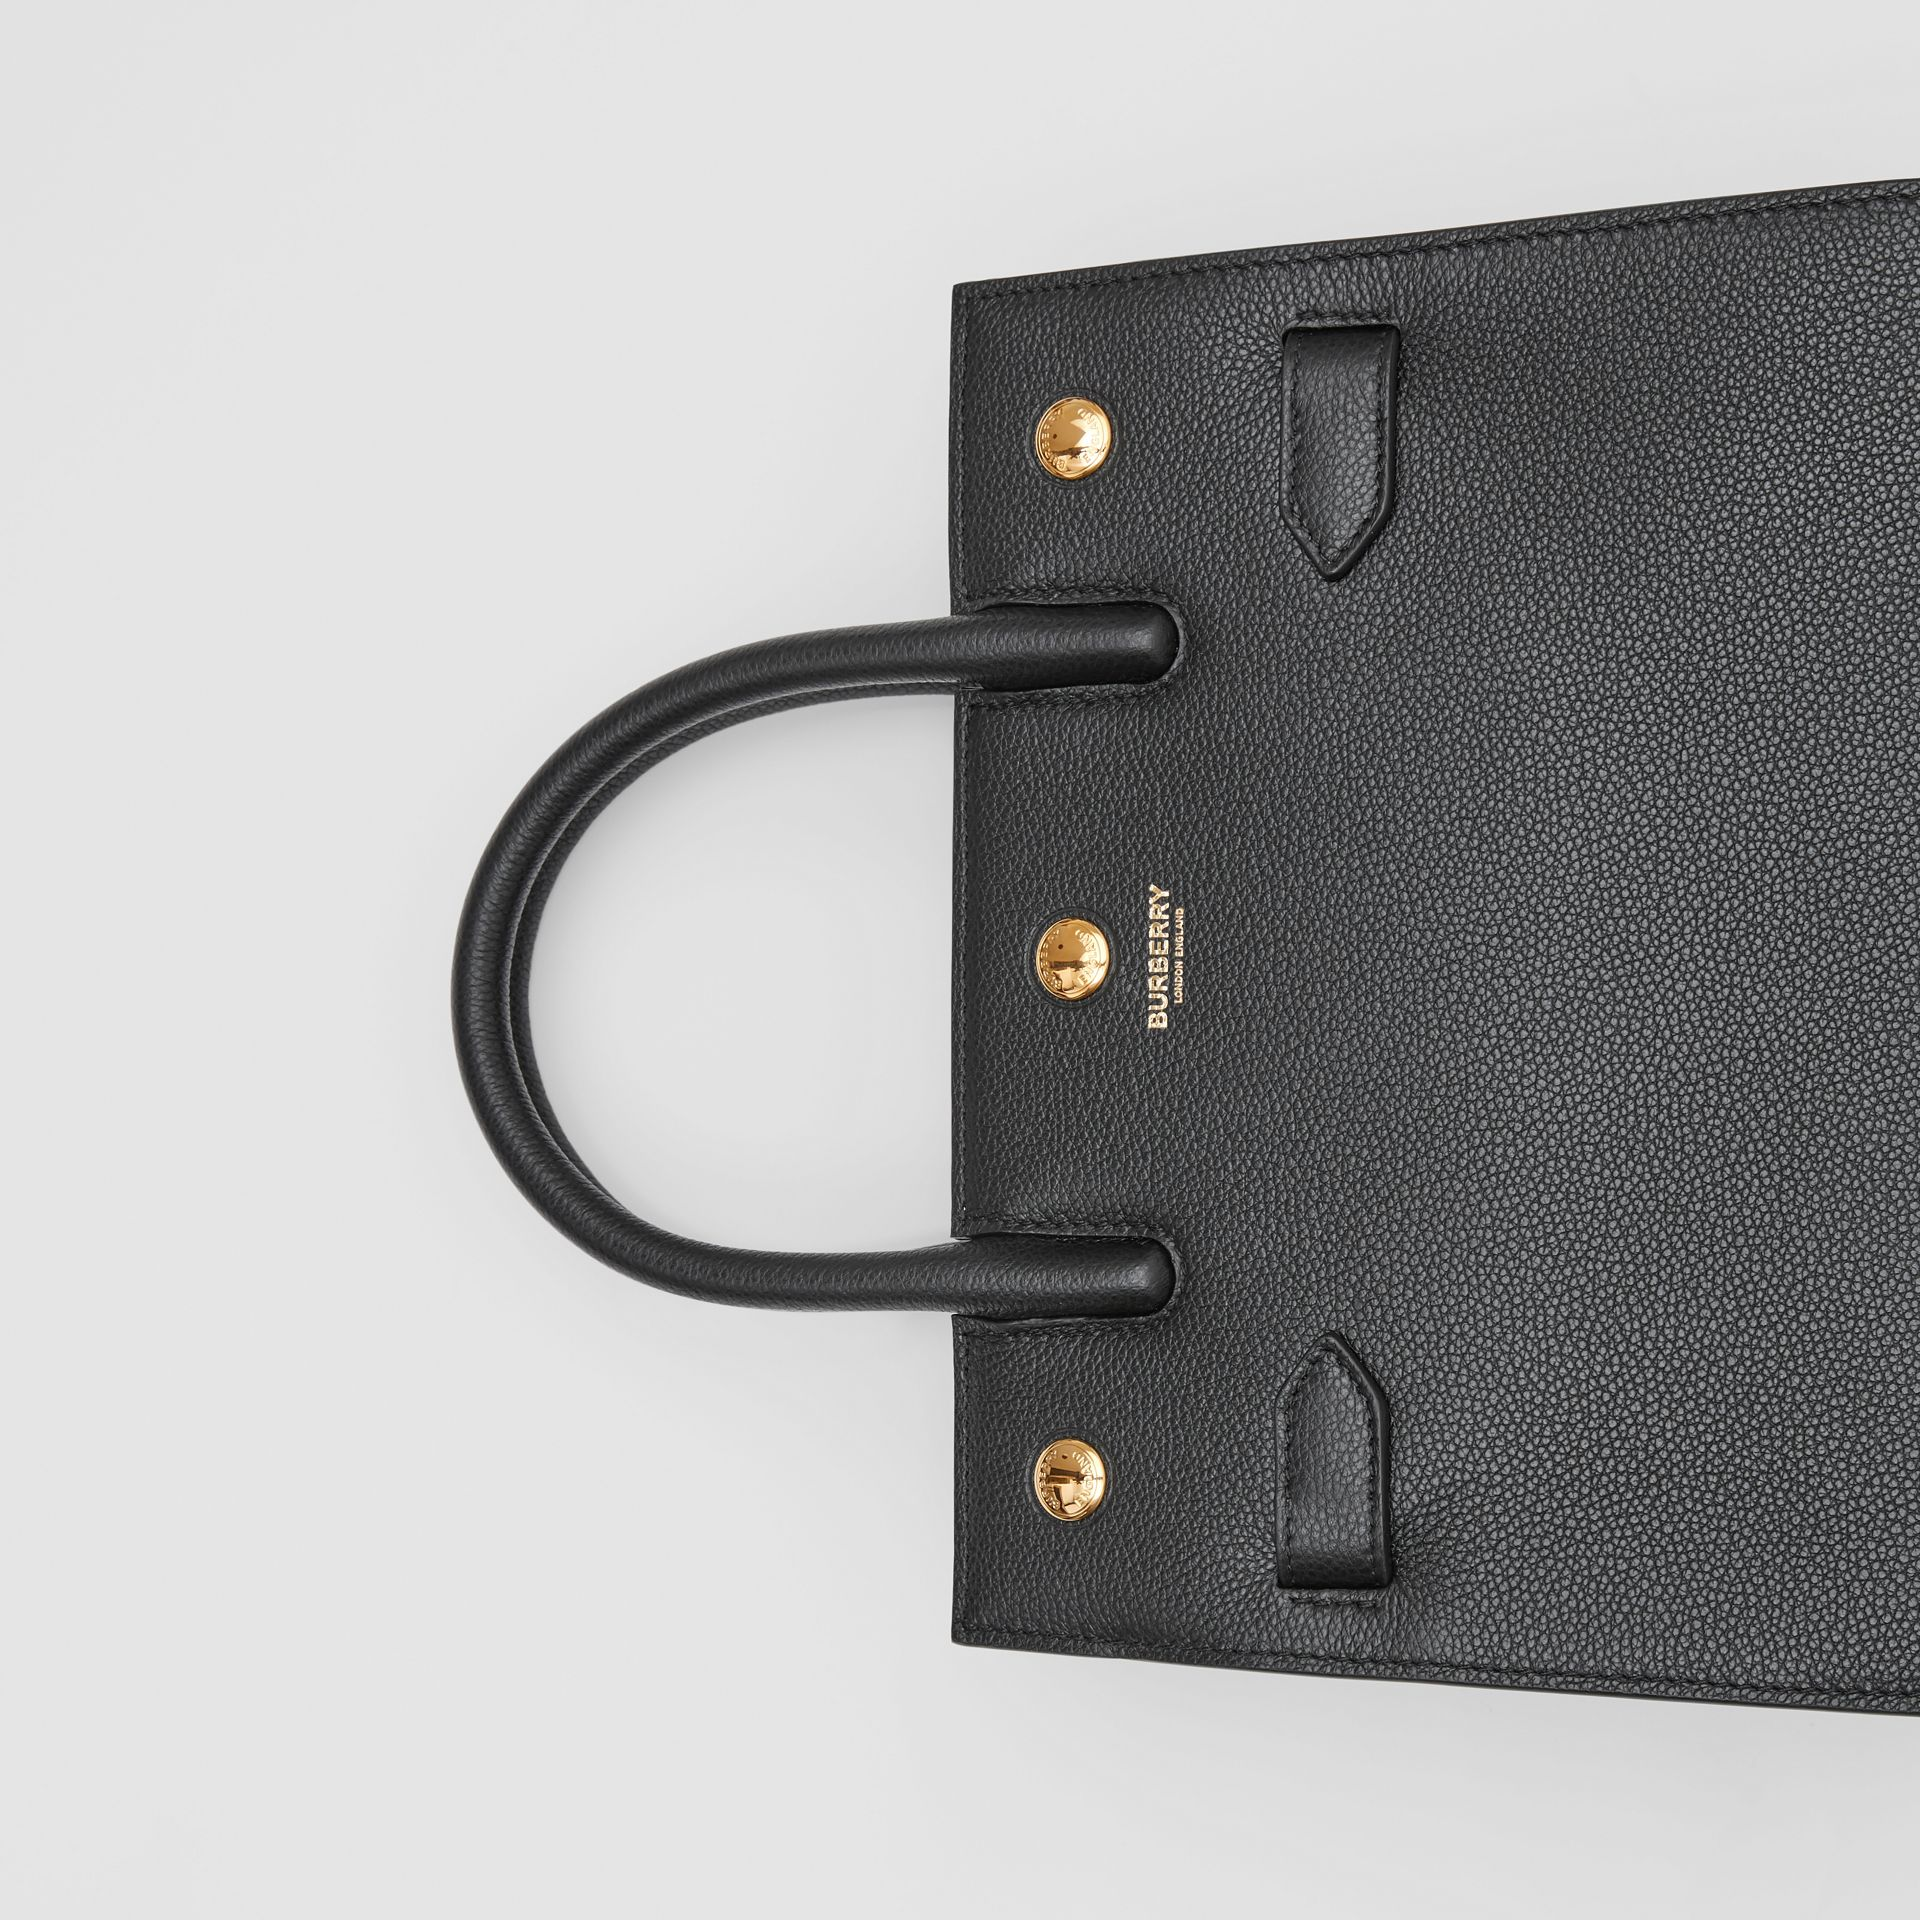 Mini Leather Two-handle Title Bag in Black - Women | Burberry - gallery image 1